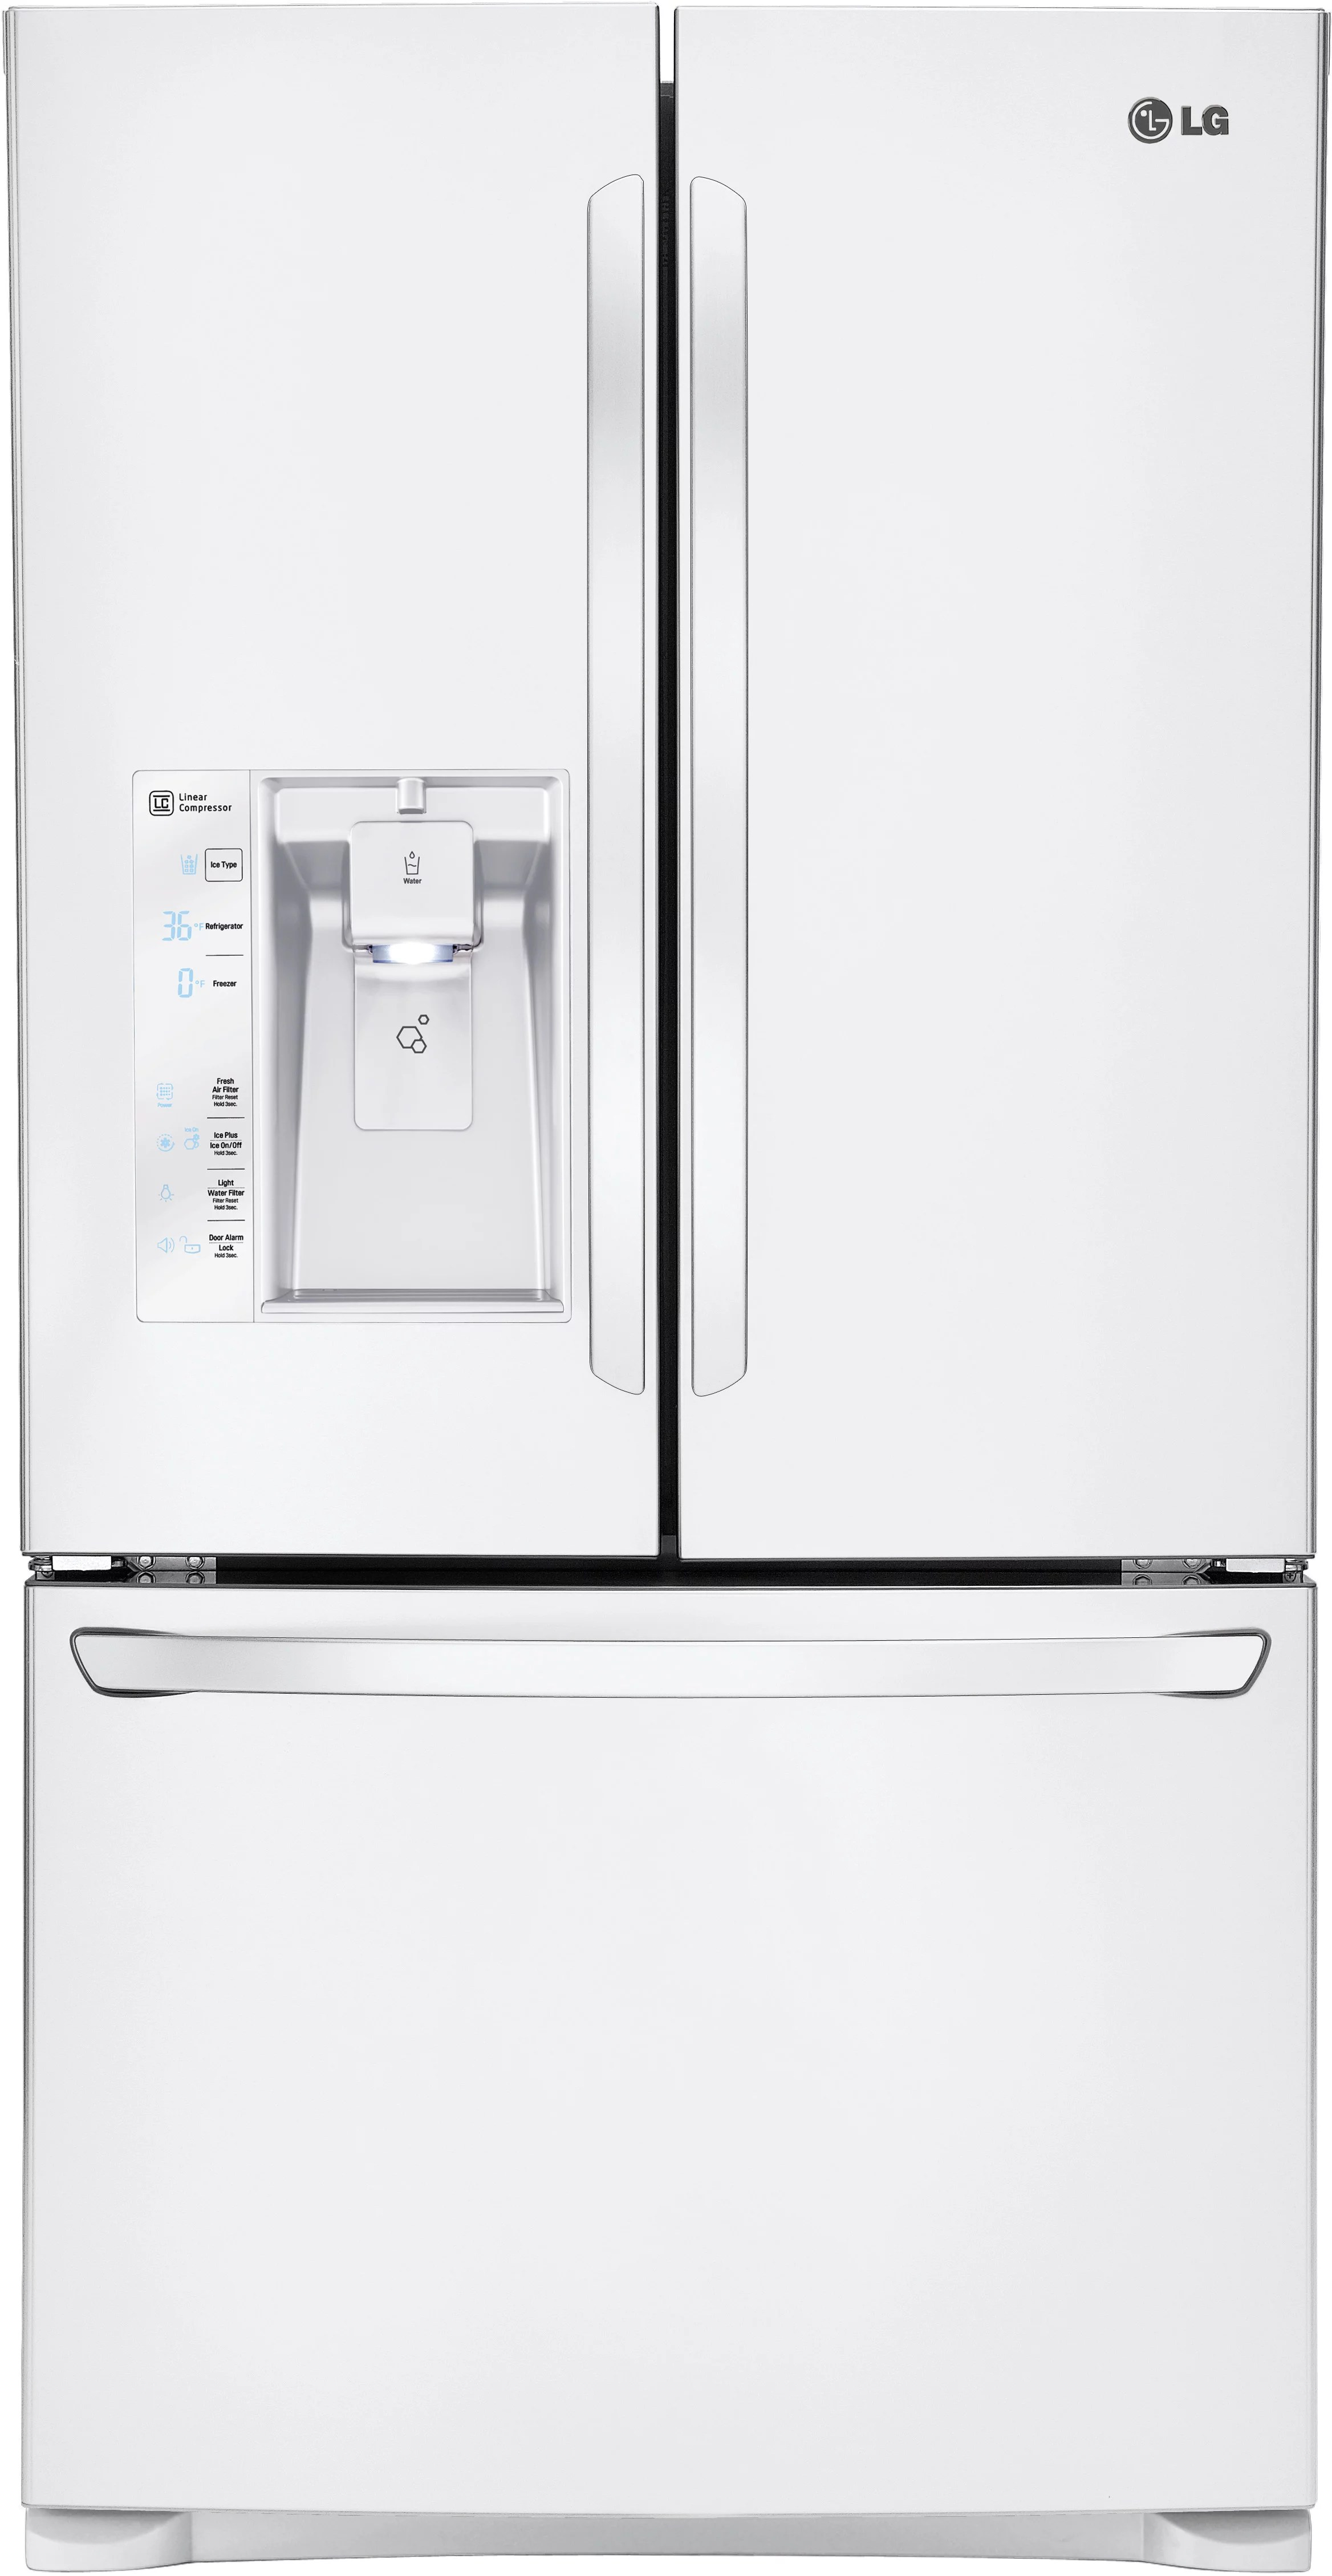 LG LFXS29626W 36 Inch French Door Refrigerator with Smart